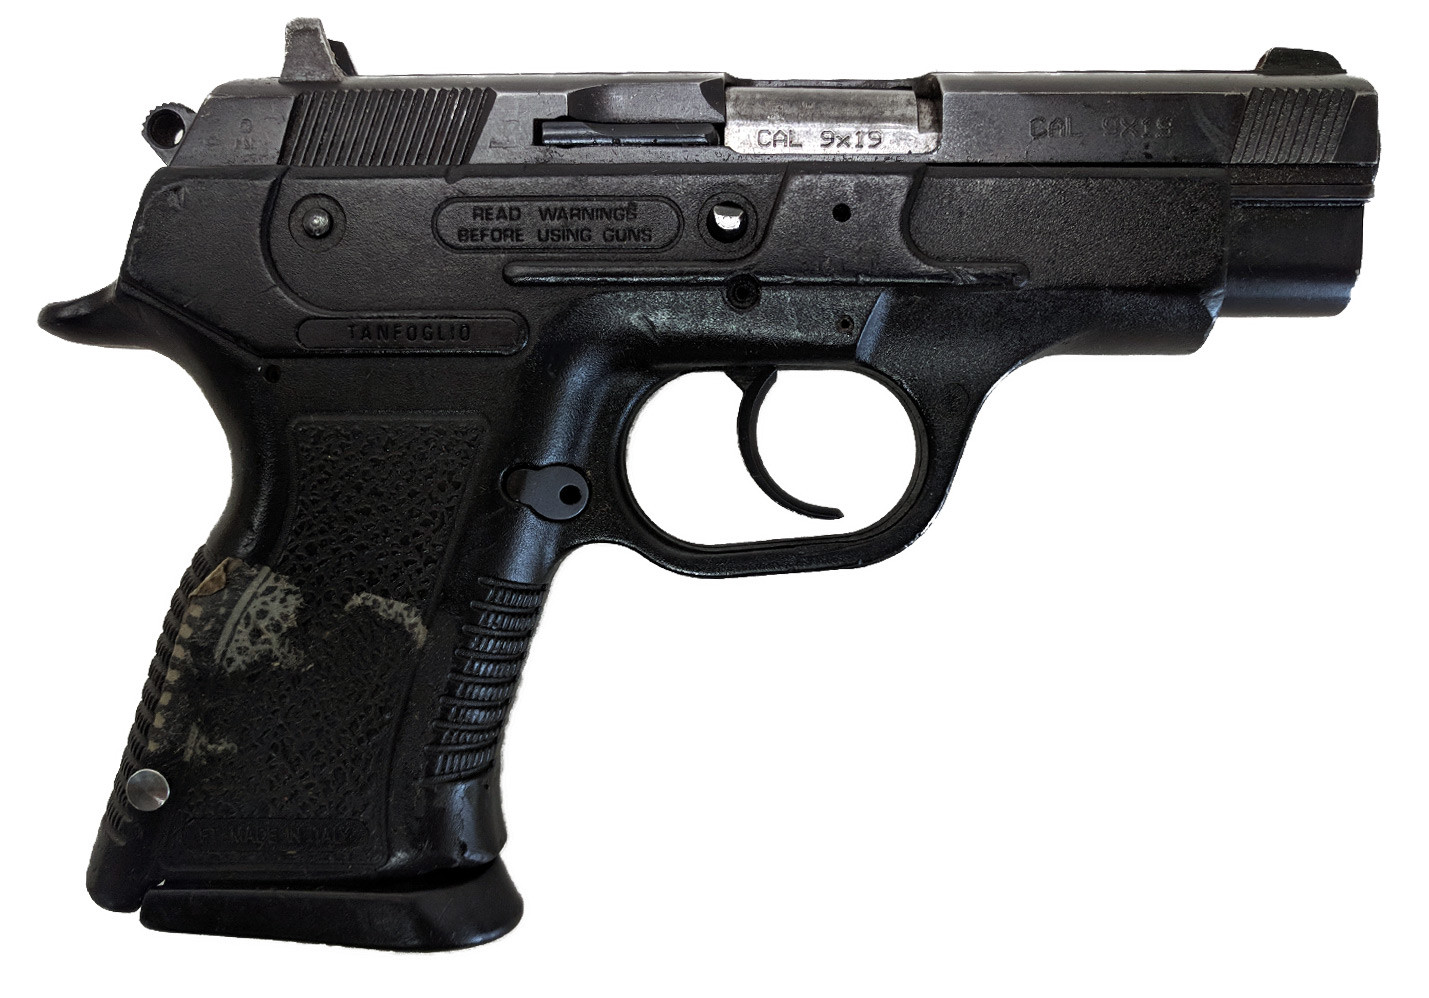 Tanfoglio Force Compact 919, 9mm, *Very Good, Incomplete*